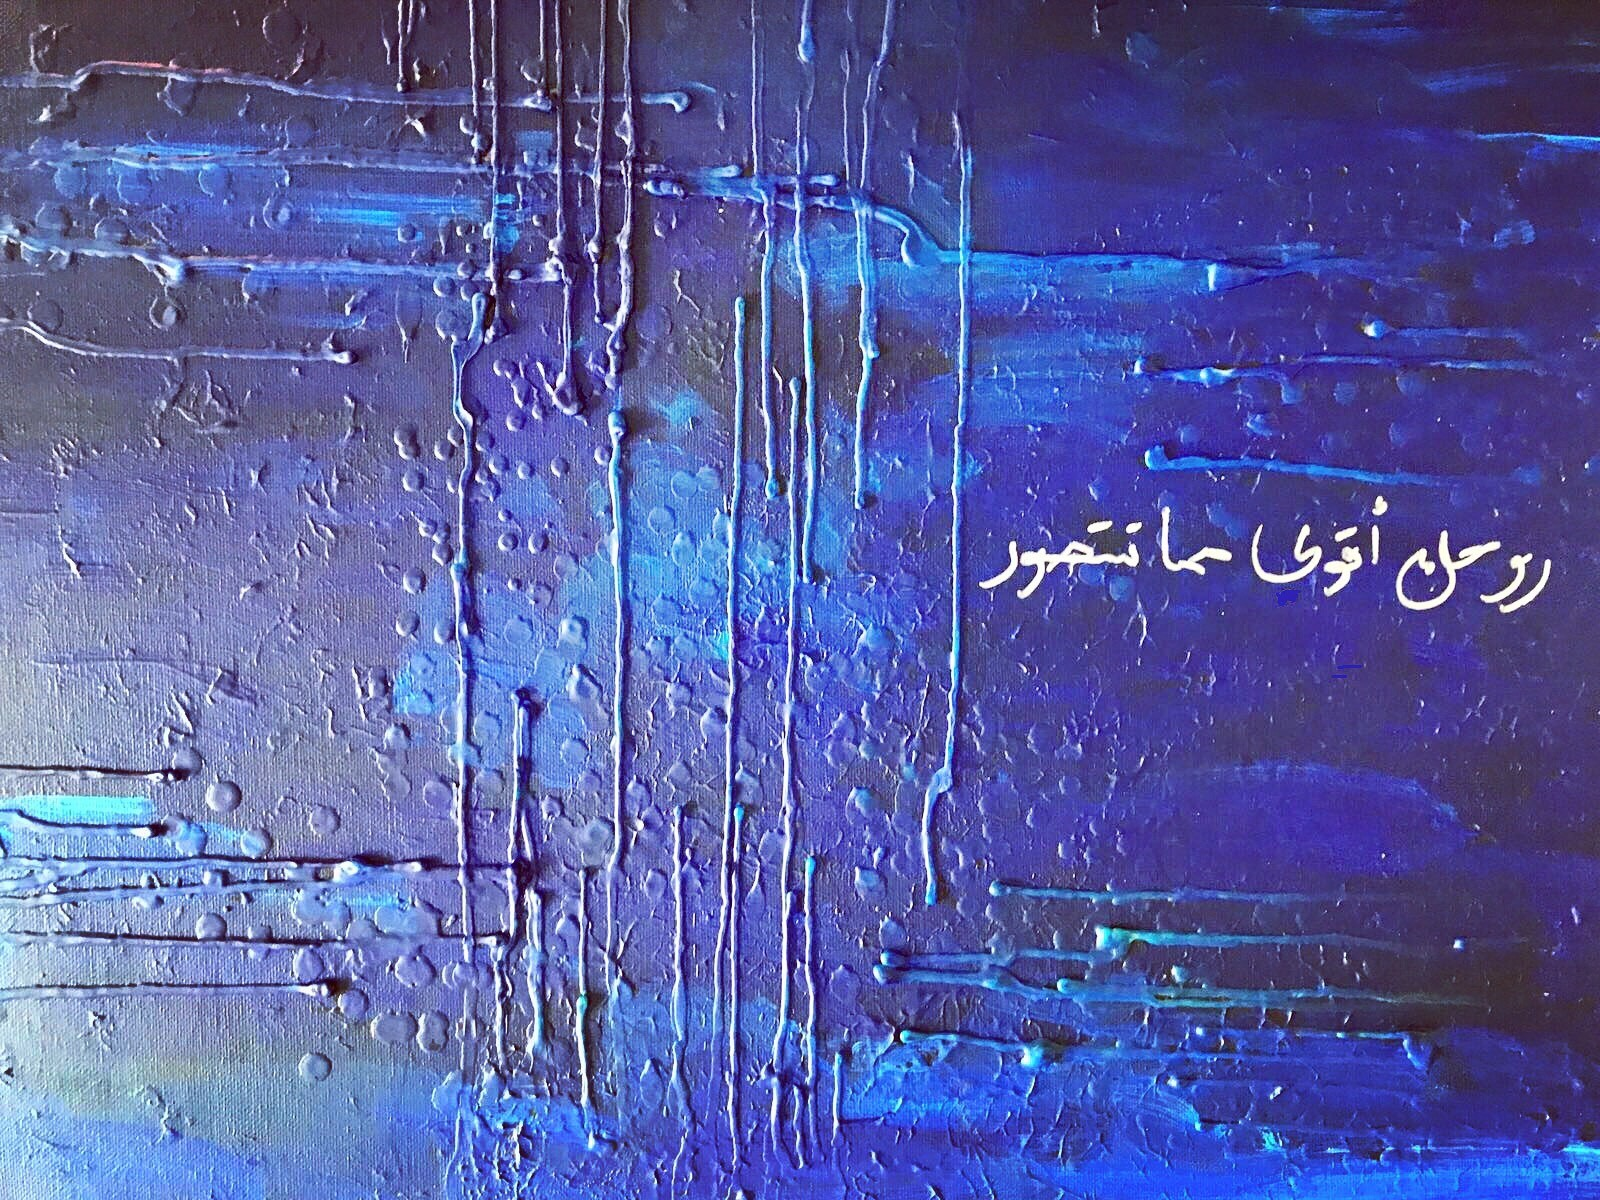 """My latest painting with finger painted acrylic, candle wax and Arabic writing on it: """"Your soul is stronger than you think"""""""